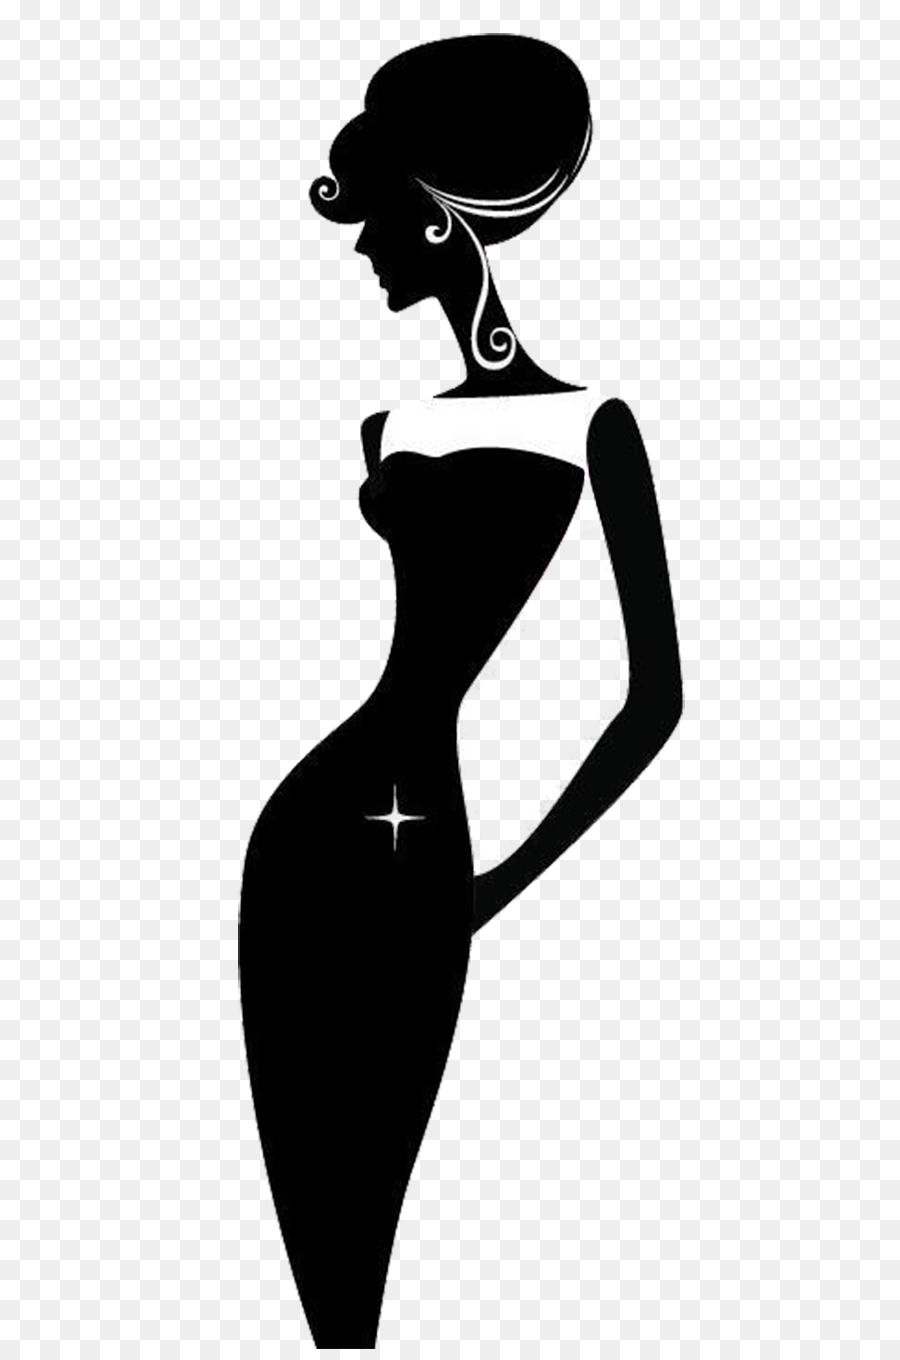 900x1360 Silhouette Woman Royalty Free Clip Art